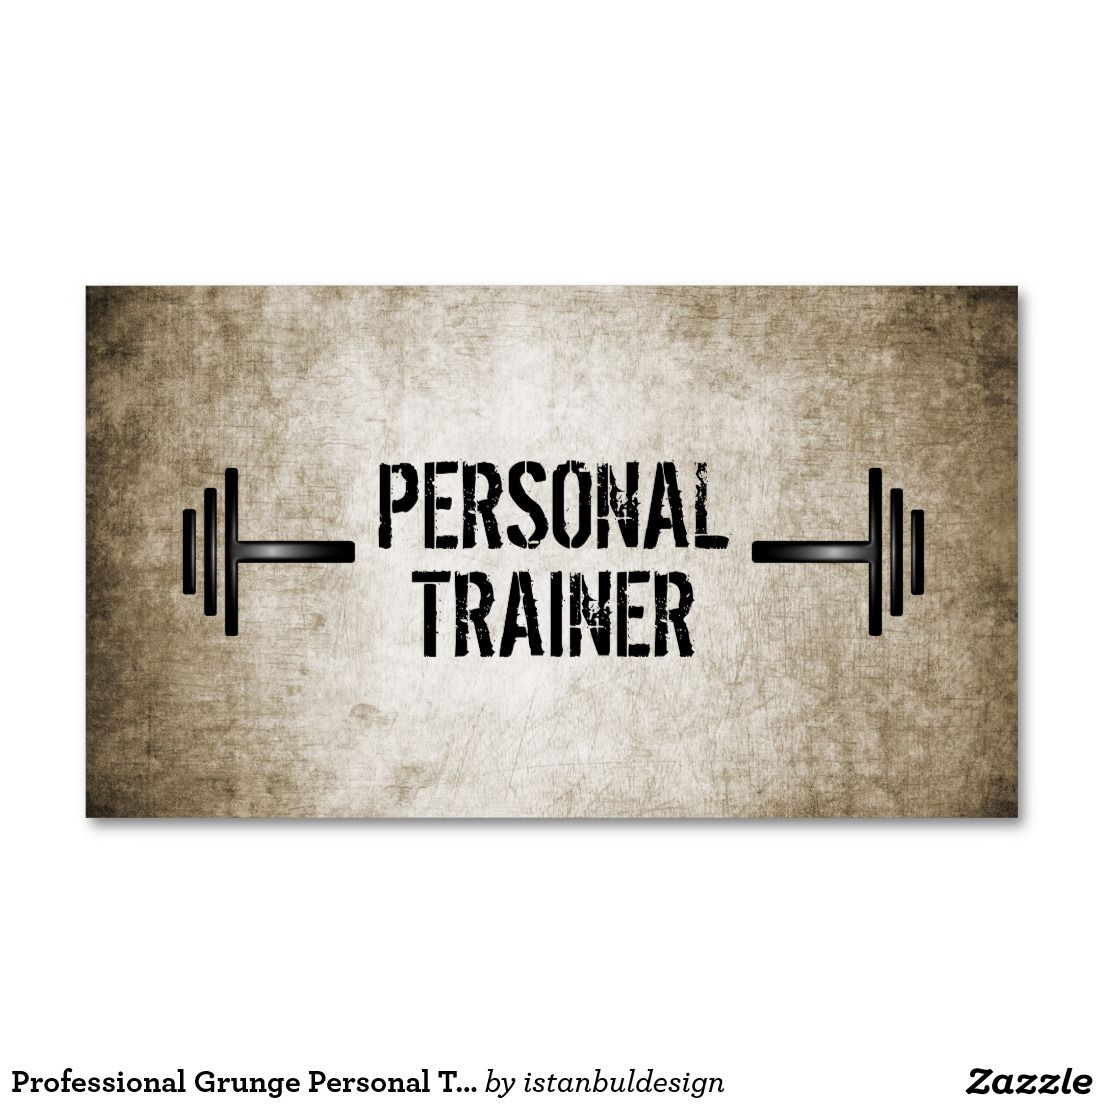 Grunge Personal Trainer Business Card | Pinterest | Personal trainer ...